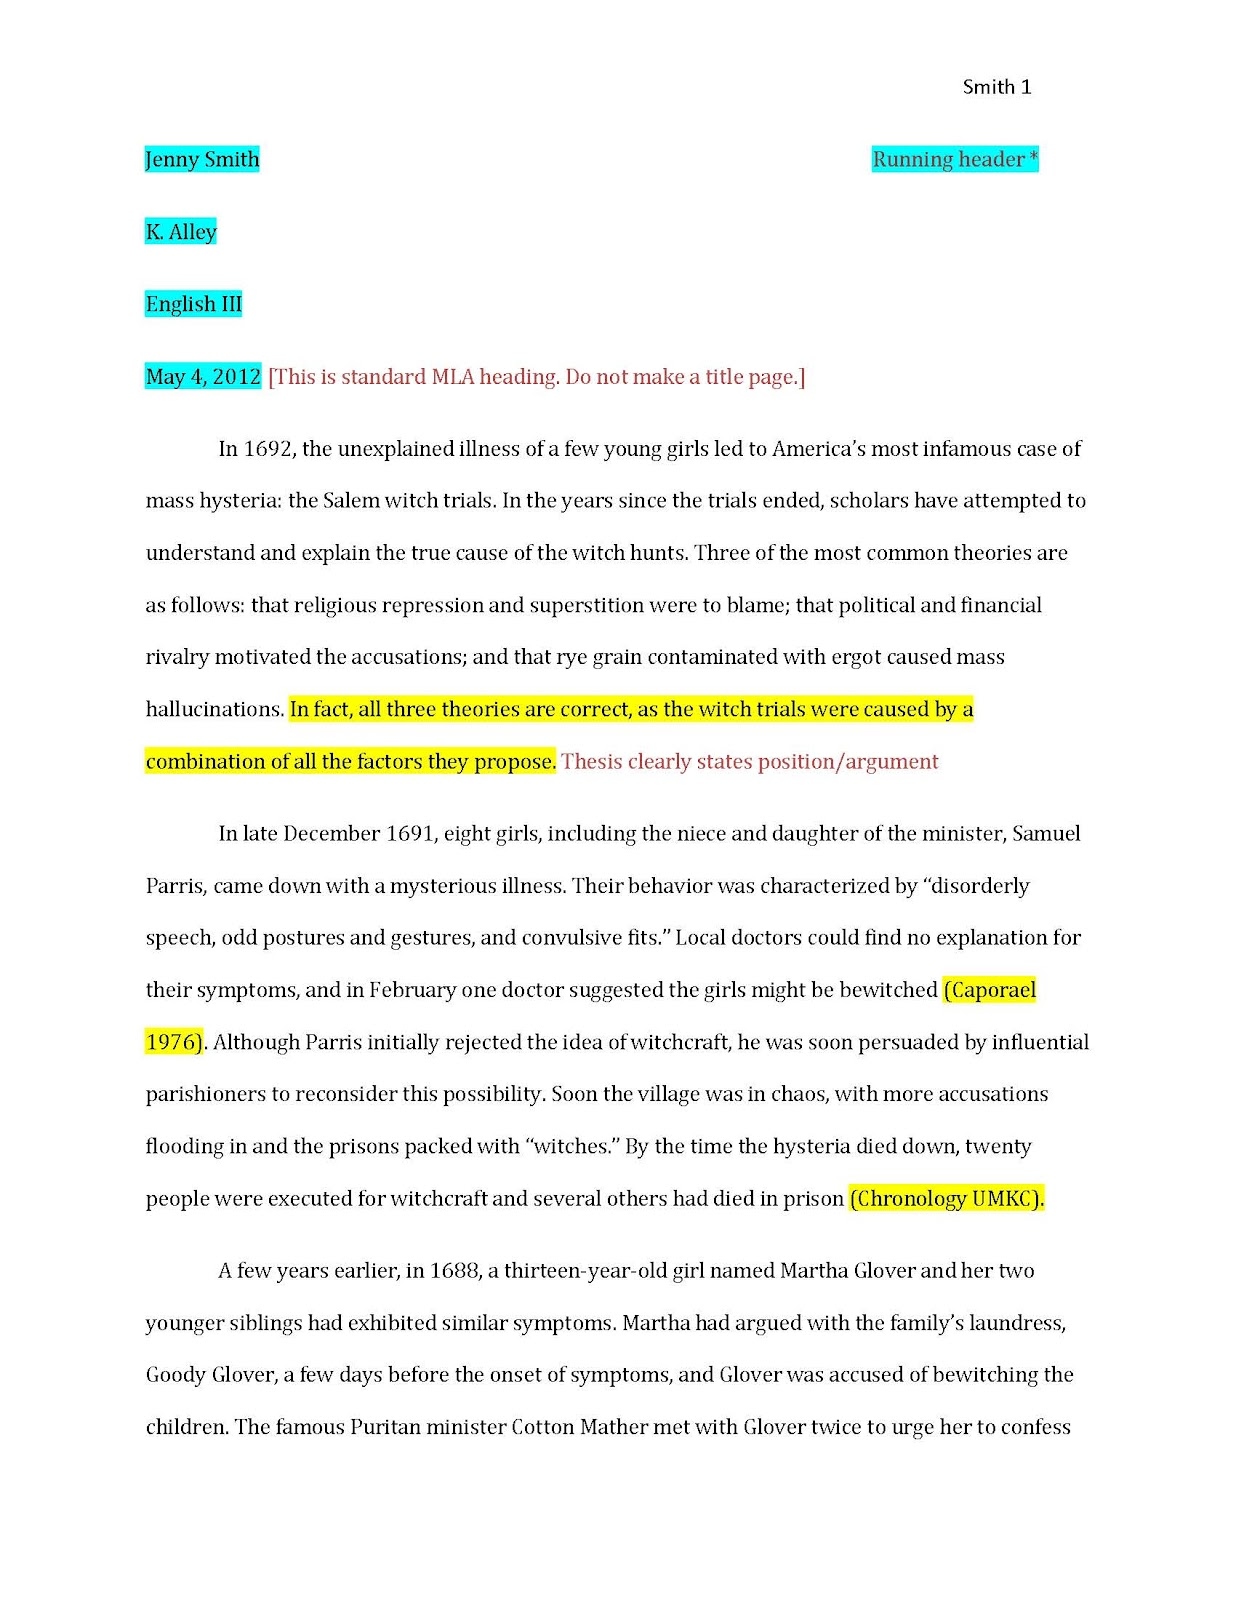 essay about animal testing animal testing essay cover letter   classification essay examples division citation in essay citation in essay gxart in essay citation purdue owl in text citation online